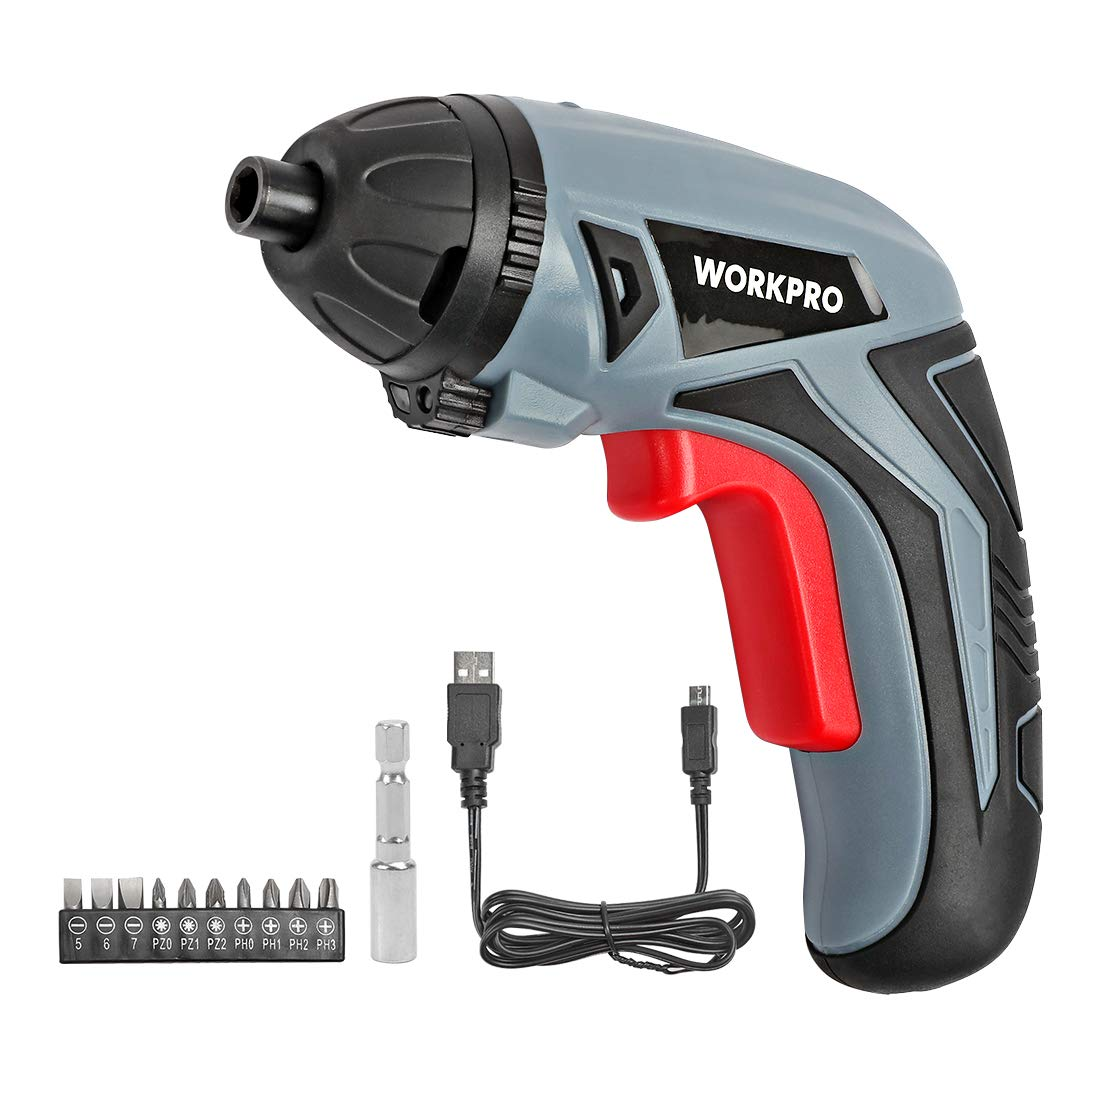 WORKPRO Cordless Rechargeable Screwdriver, Powered by 3.6V Li-ion Battery, USB Charging Cable and 10-piece Bits Included